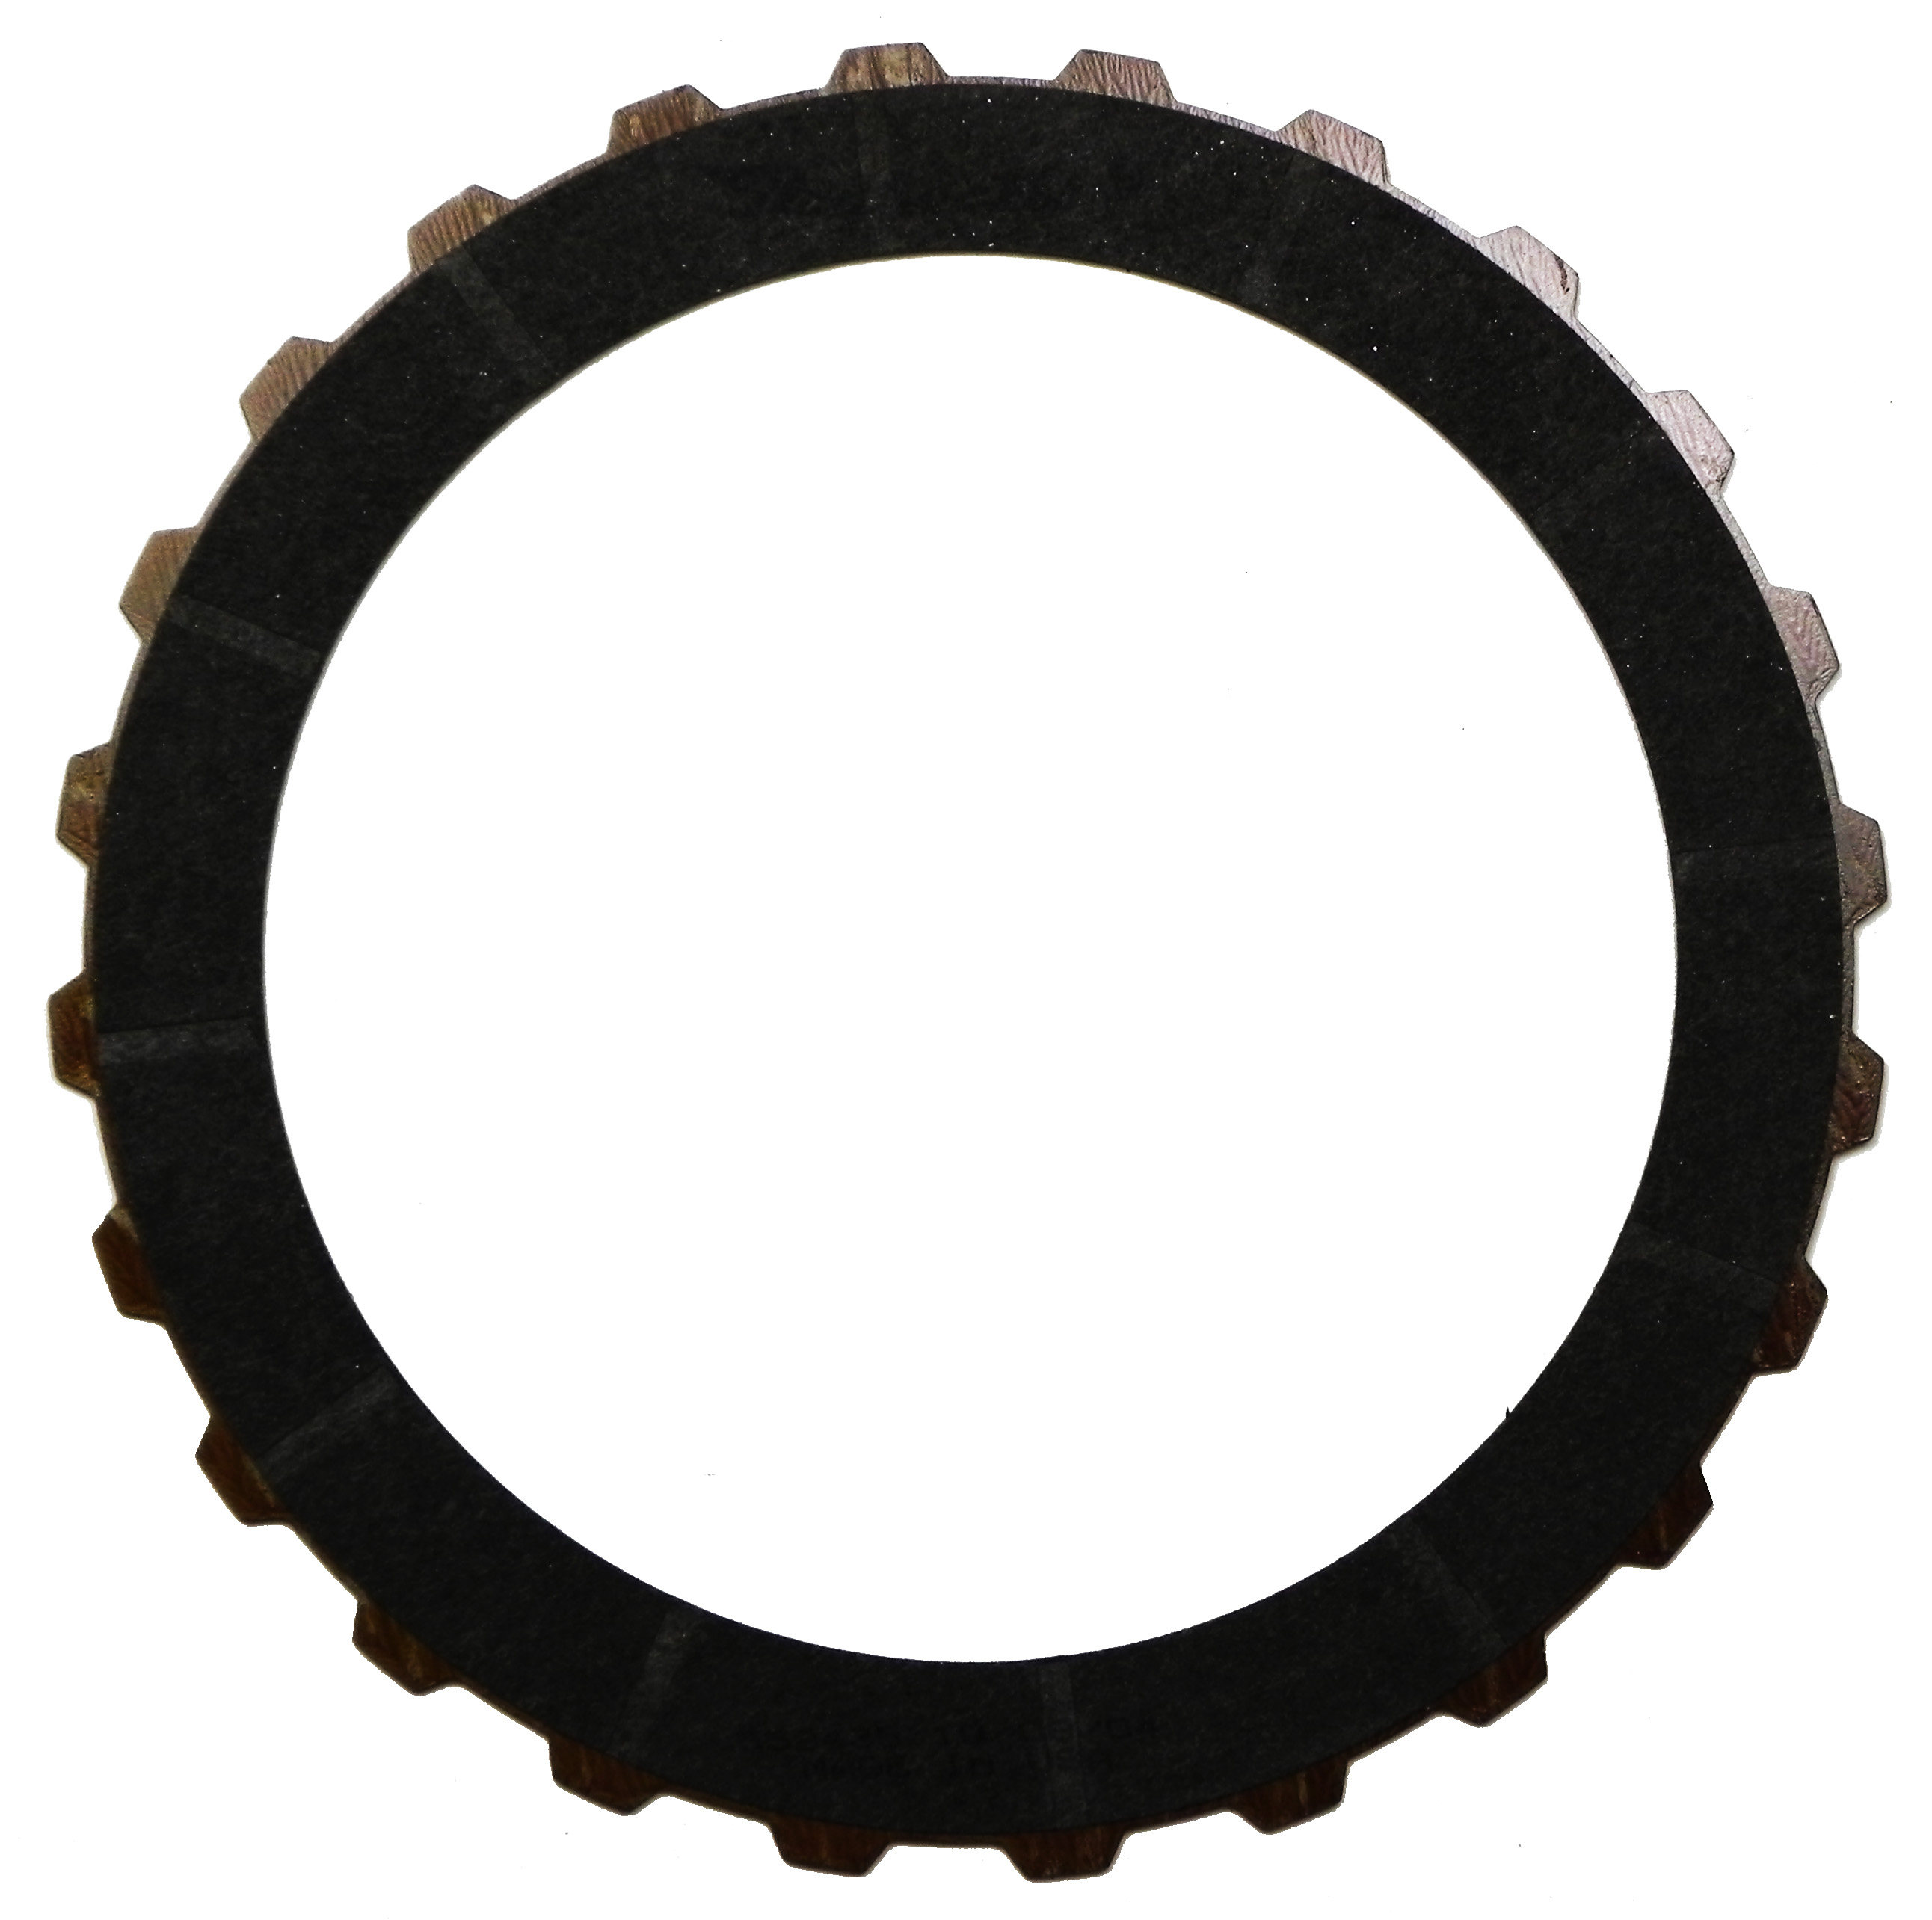 R558435 | 1999-ON Friction Clutch Plate High Energy Forward, Single Sided, OD Spline High Energy